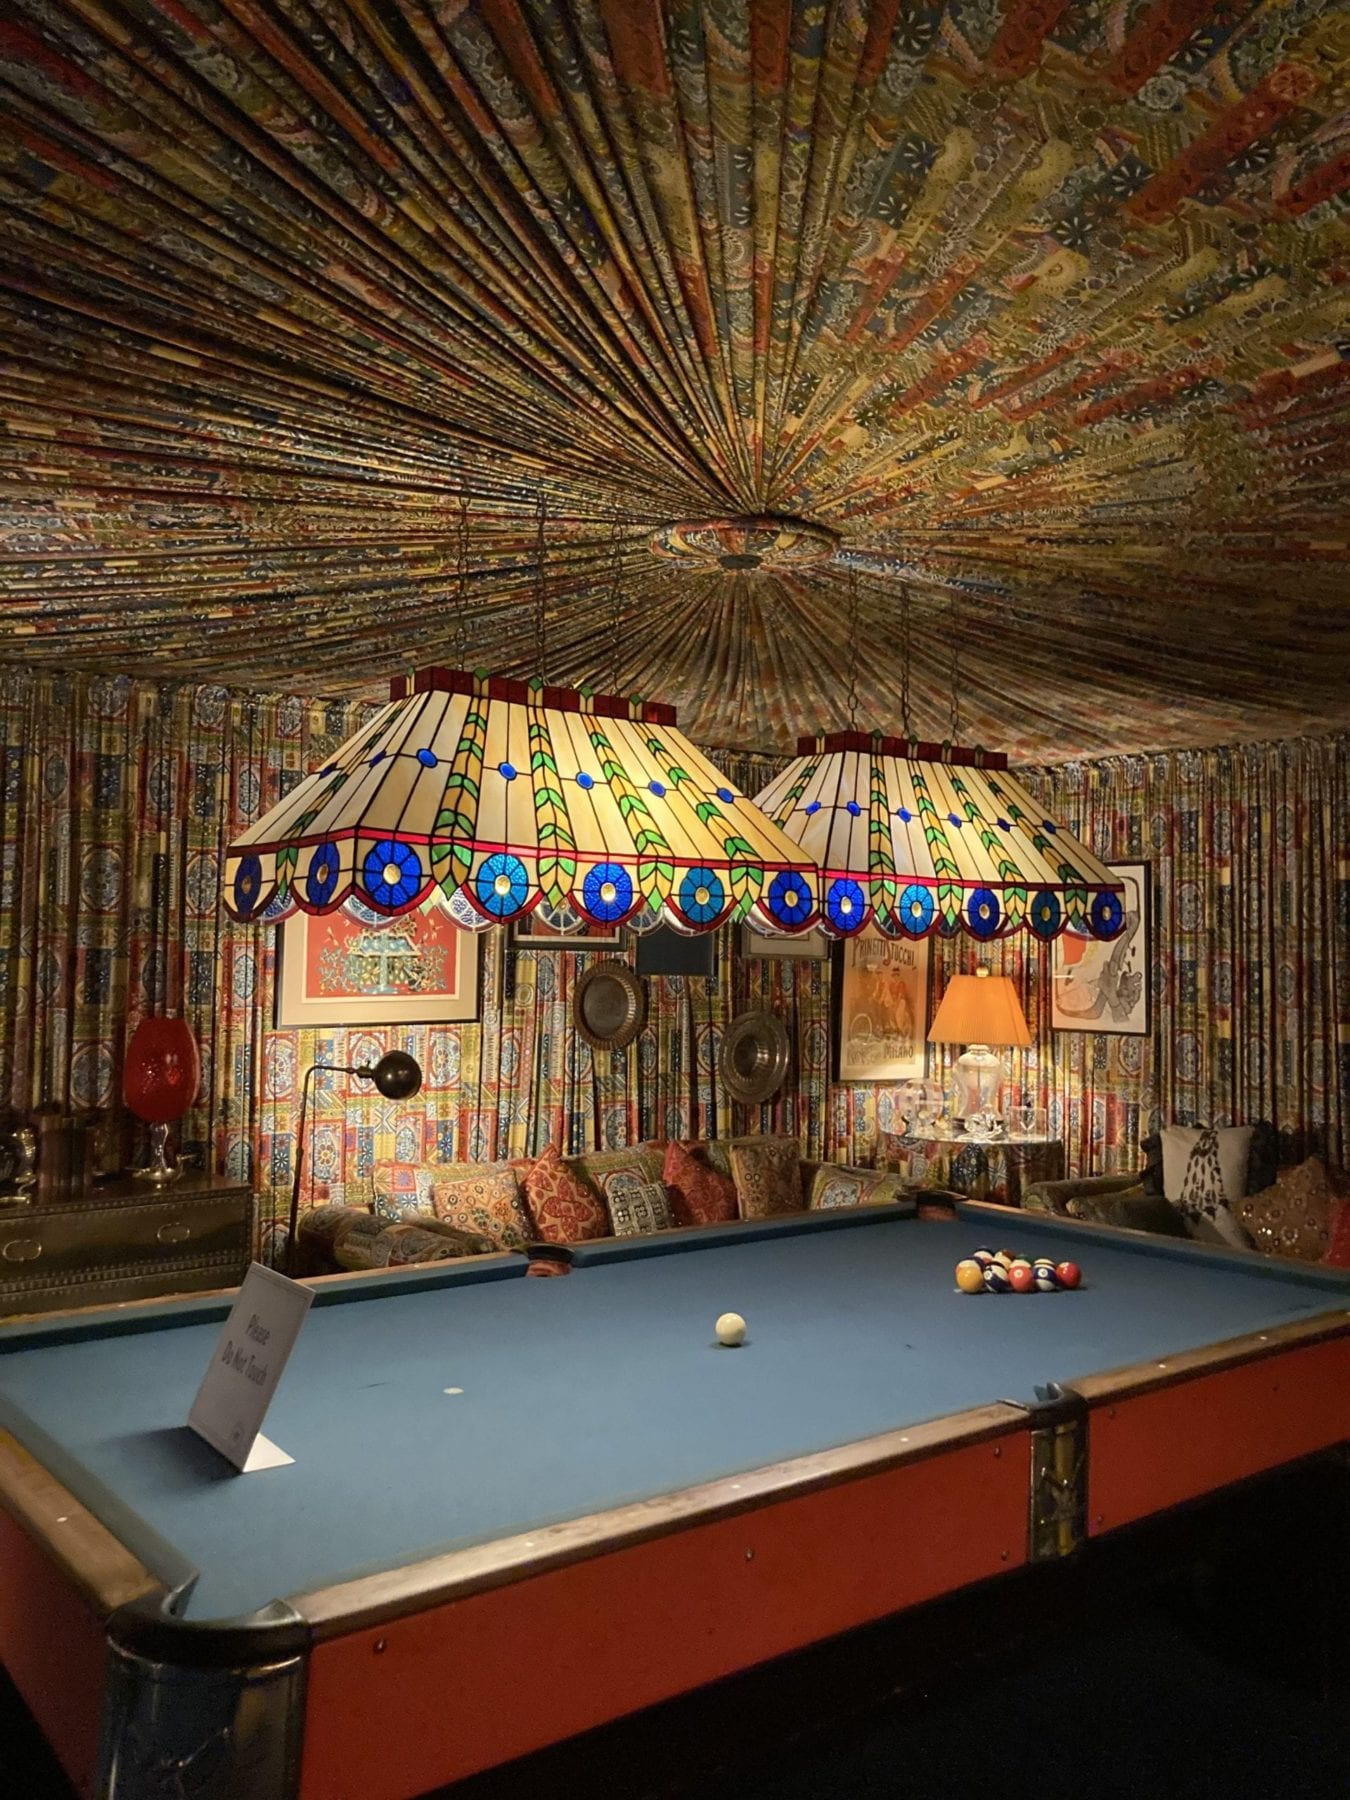 Billiards room at Graceland